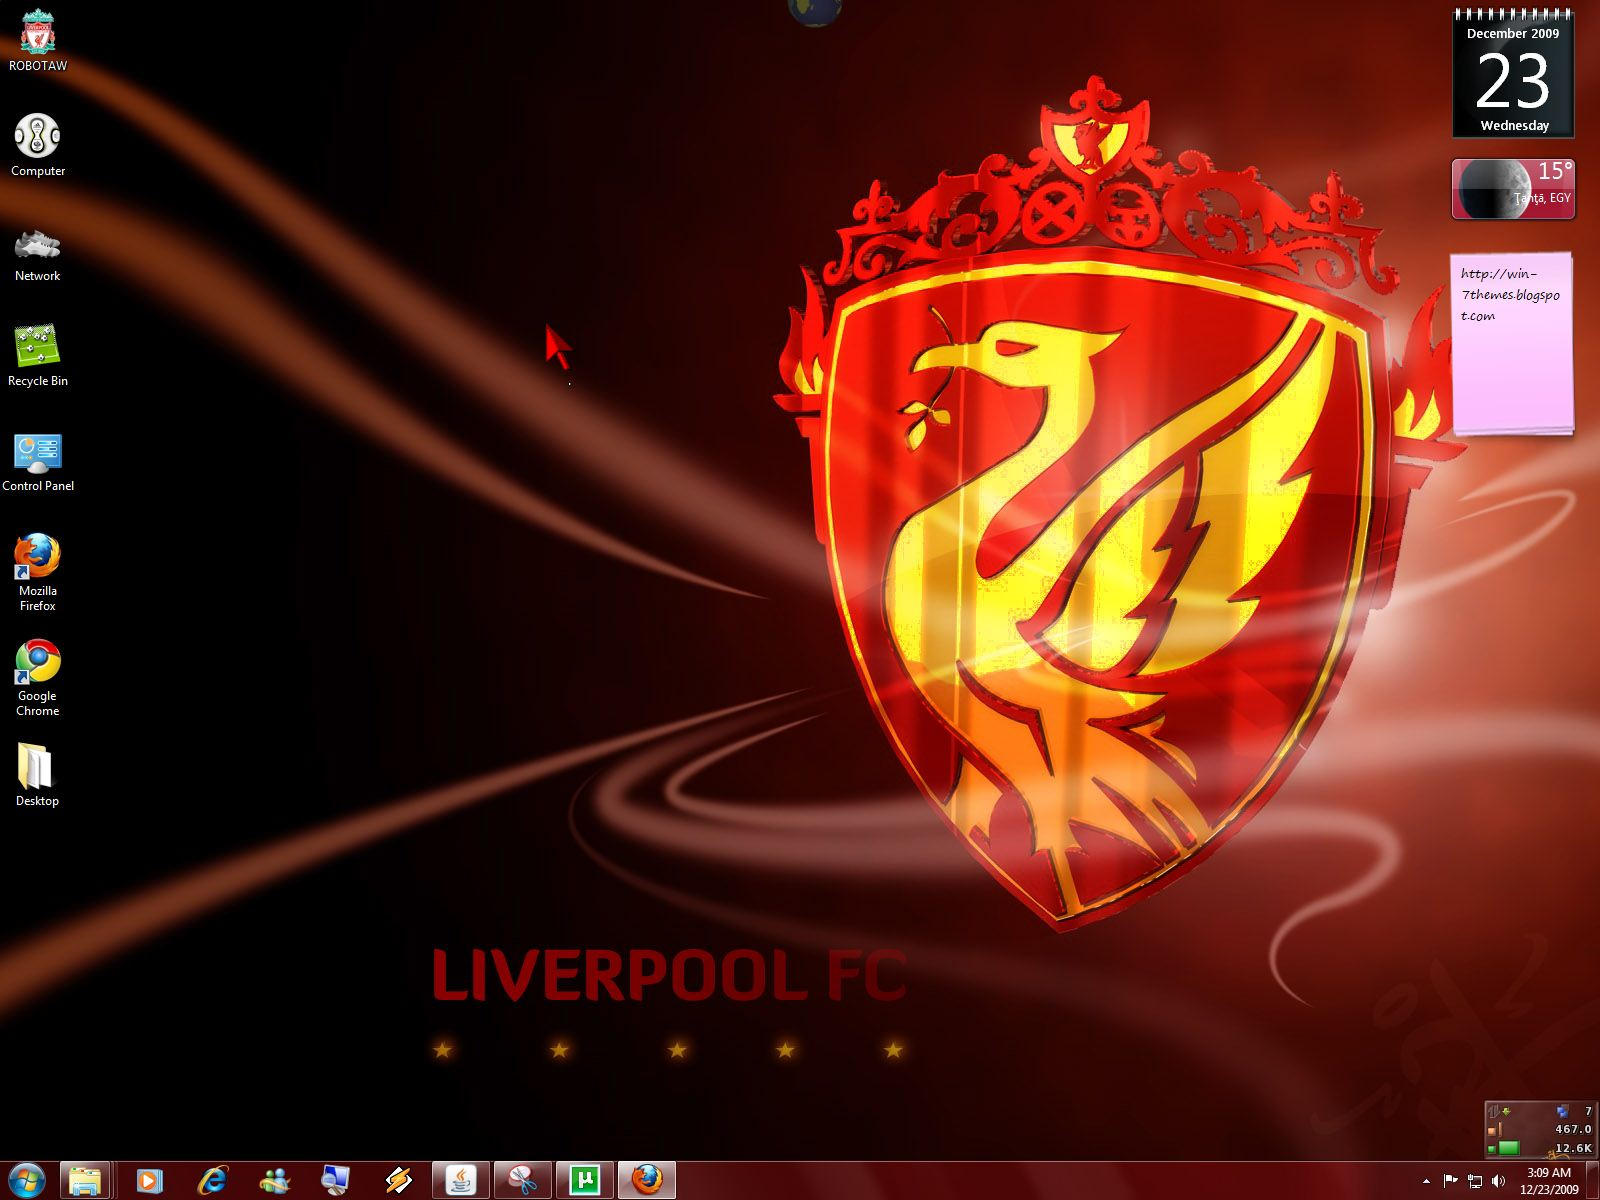 LiverPool Windows 7 Theme by yonited